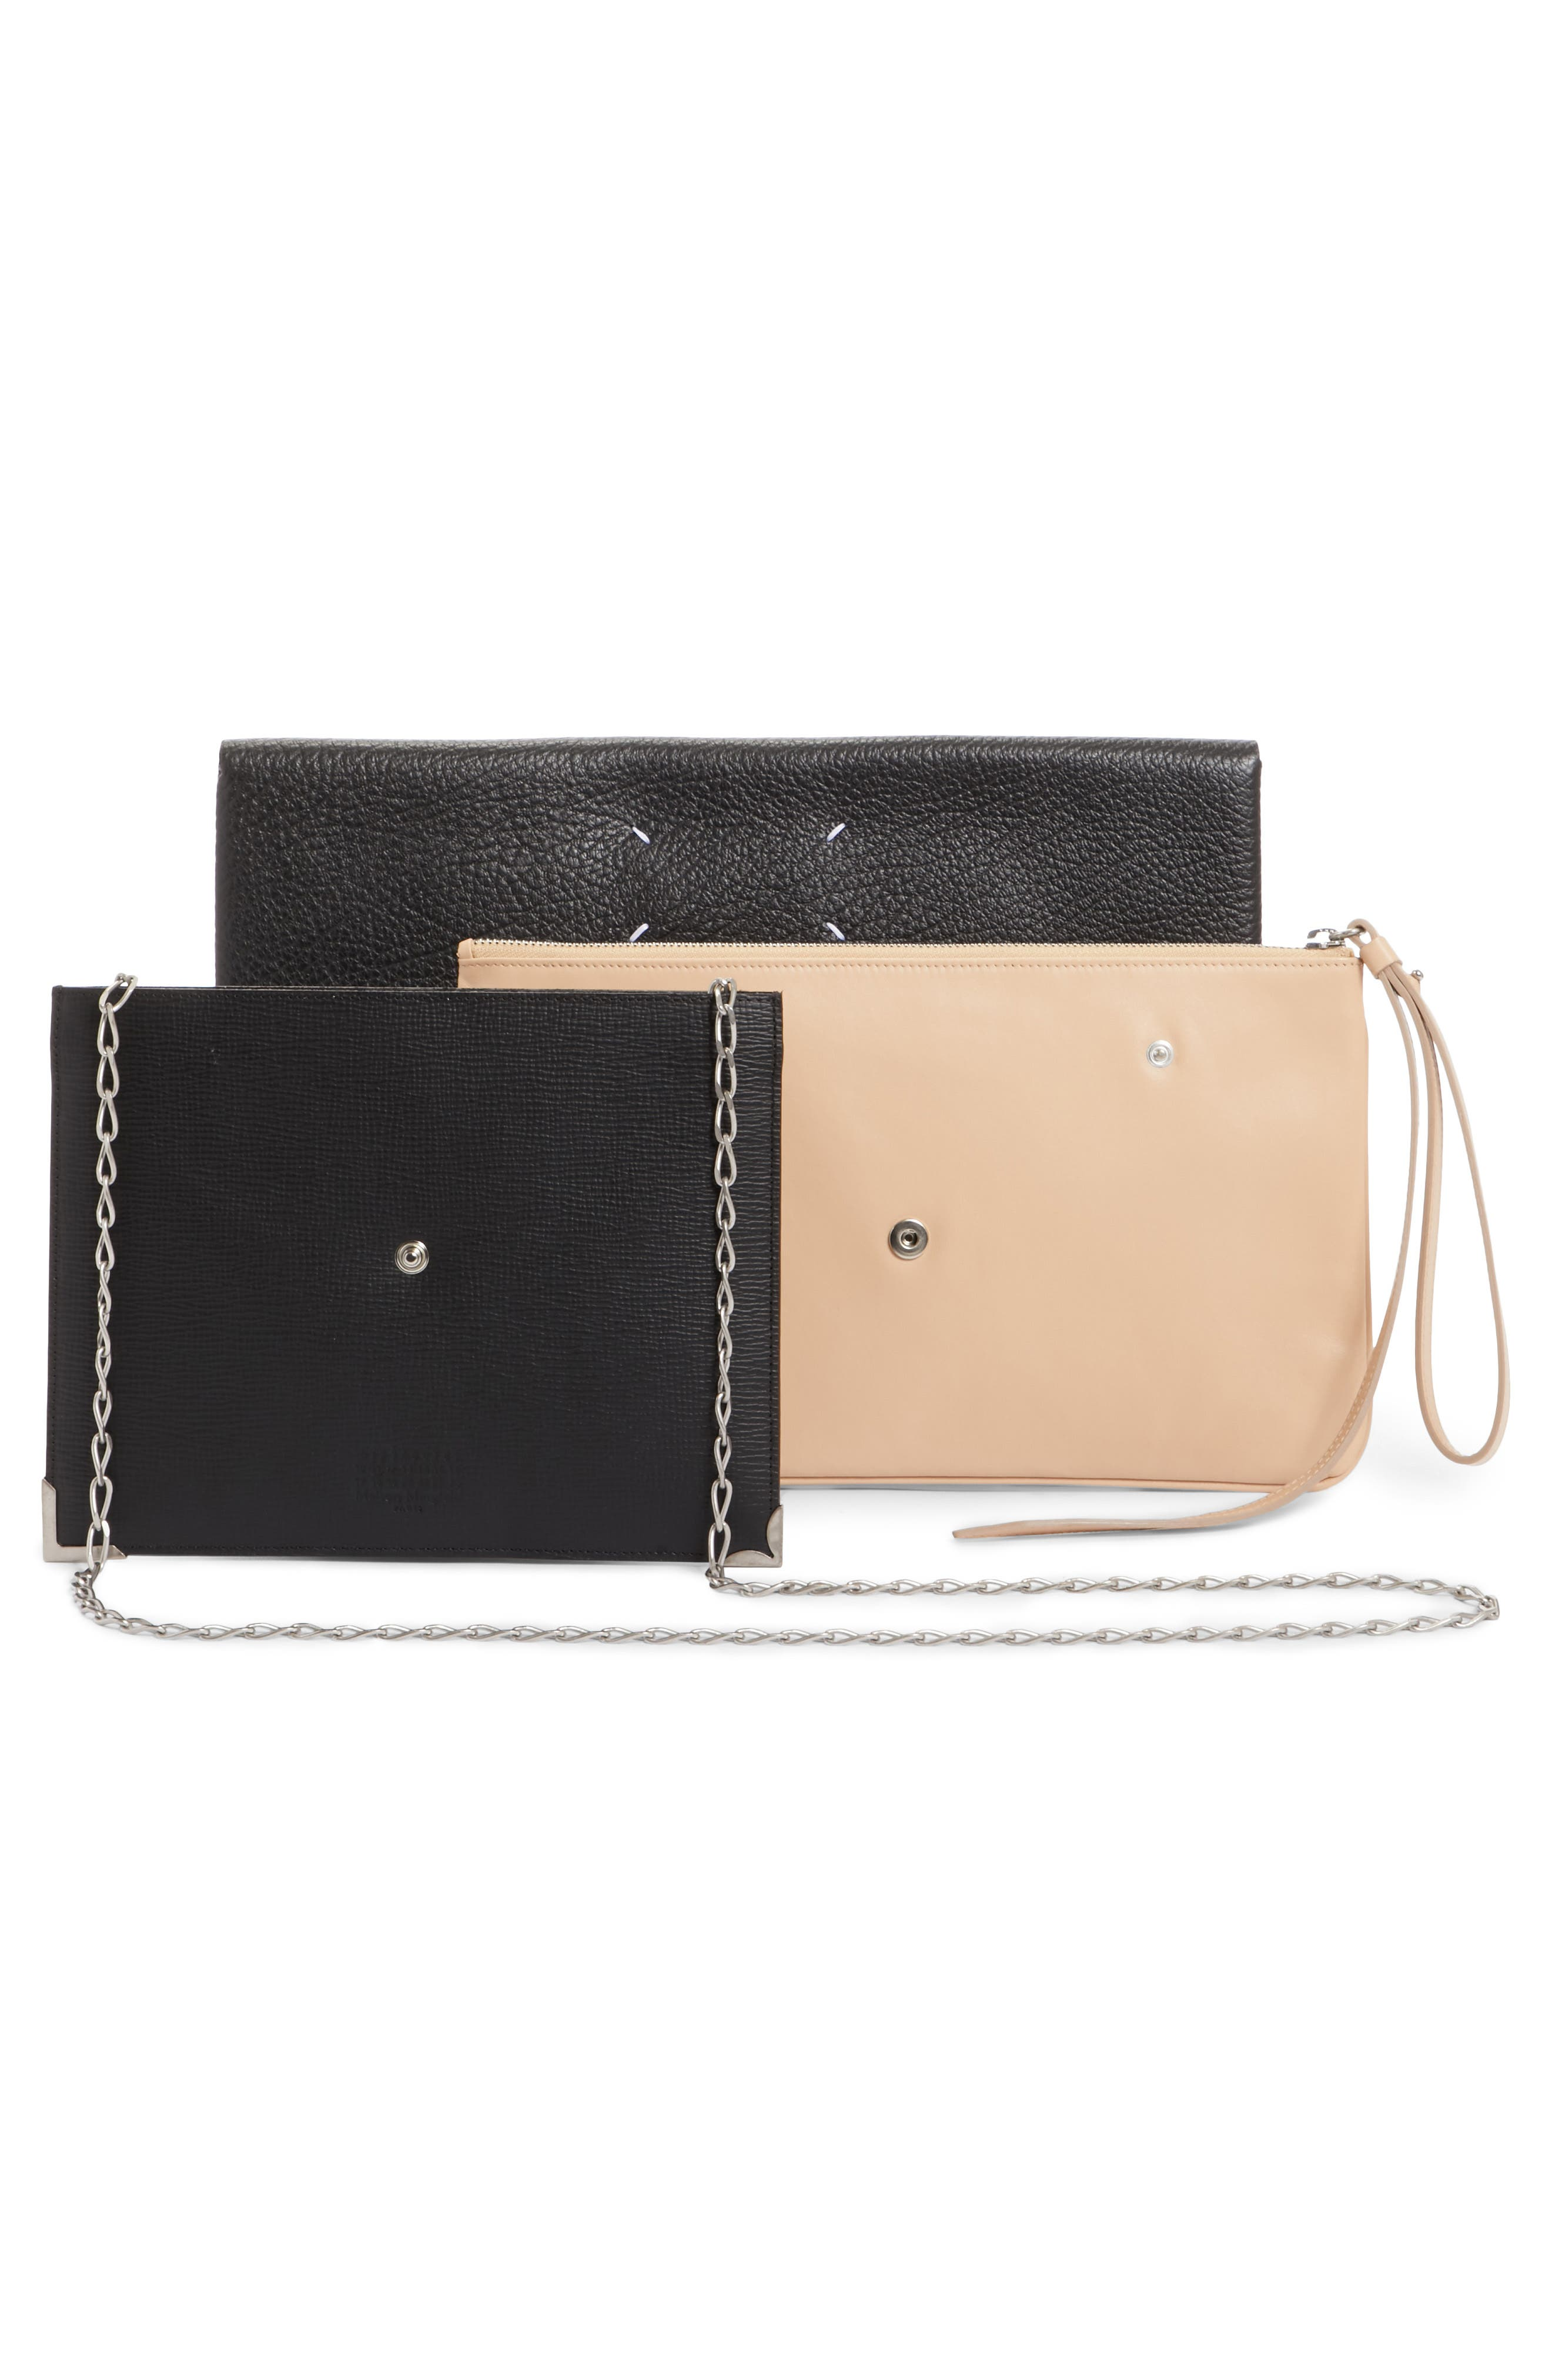 Three-in-One Stacked Leather Pouches,                             Alternate thumbnail 4, color,                             Black Nude Black